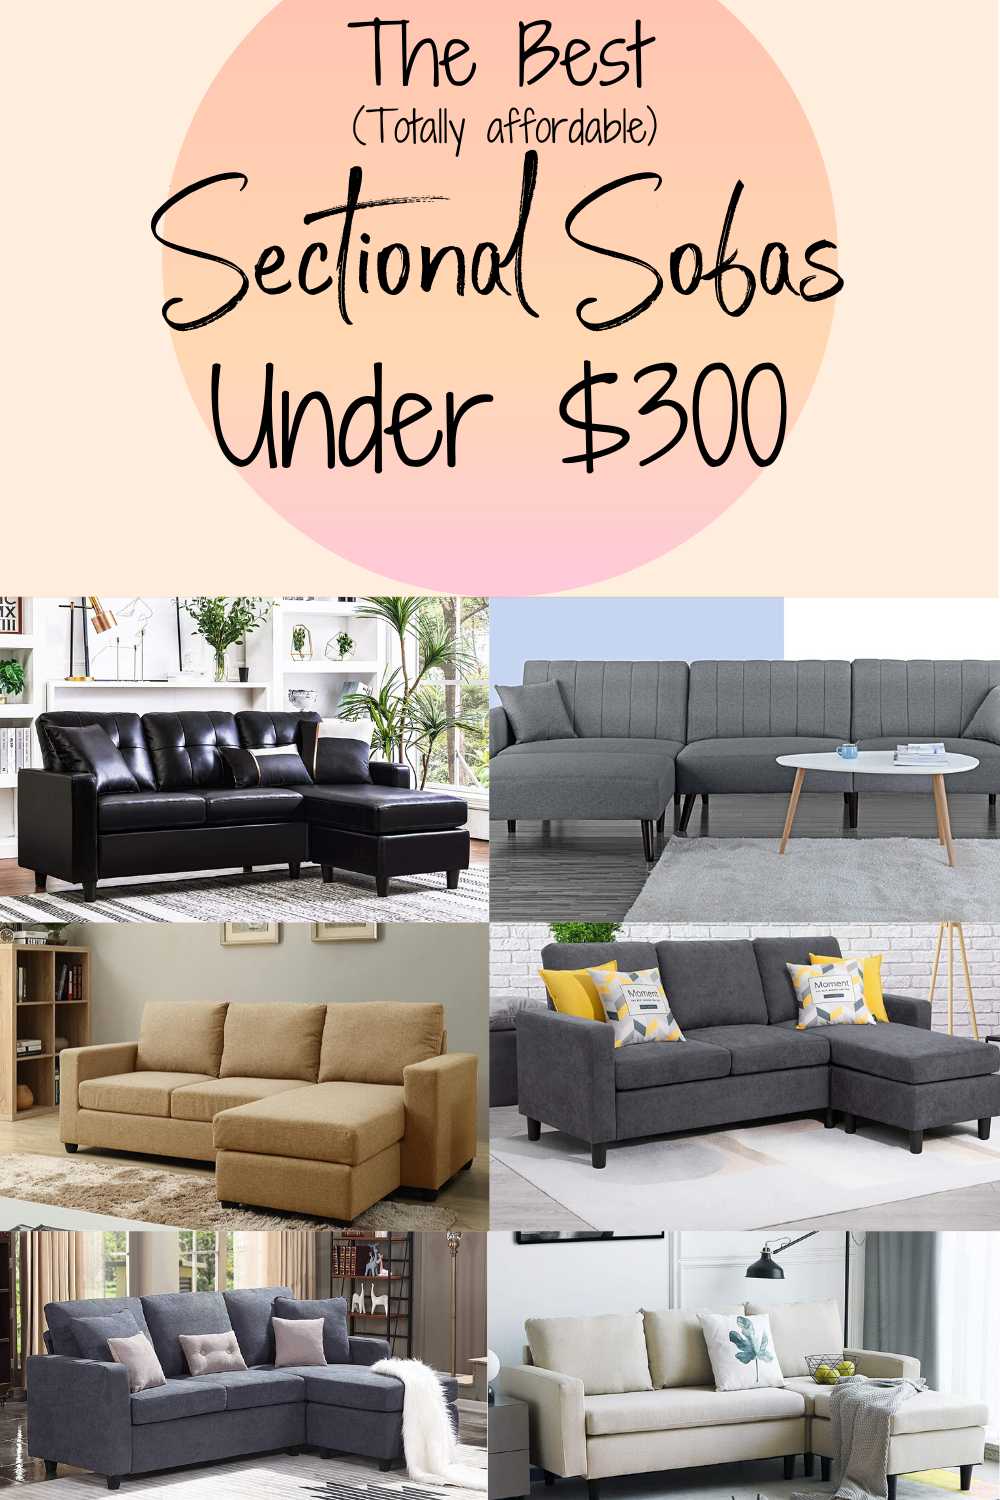 Tiny Home Living Requires Small Furniture That Can Accommodate Tiny Spaces We Found The Best Sectional Sofas Under 300 That Work Wel